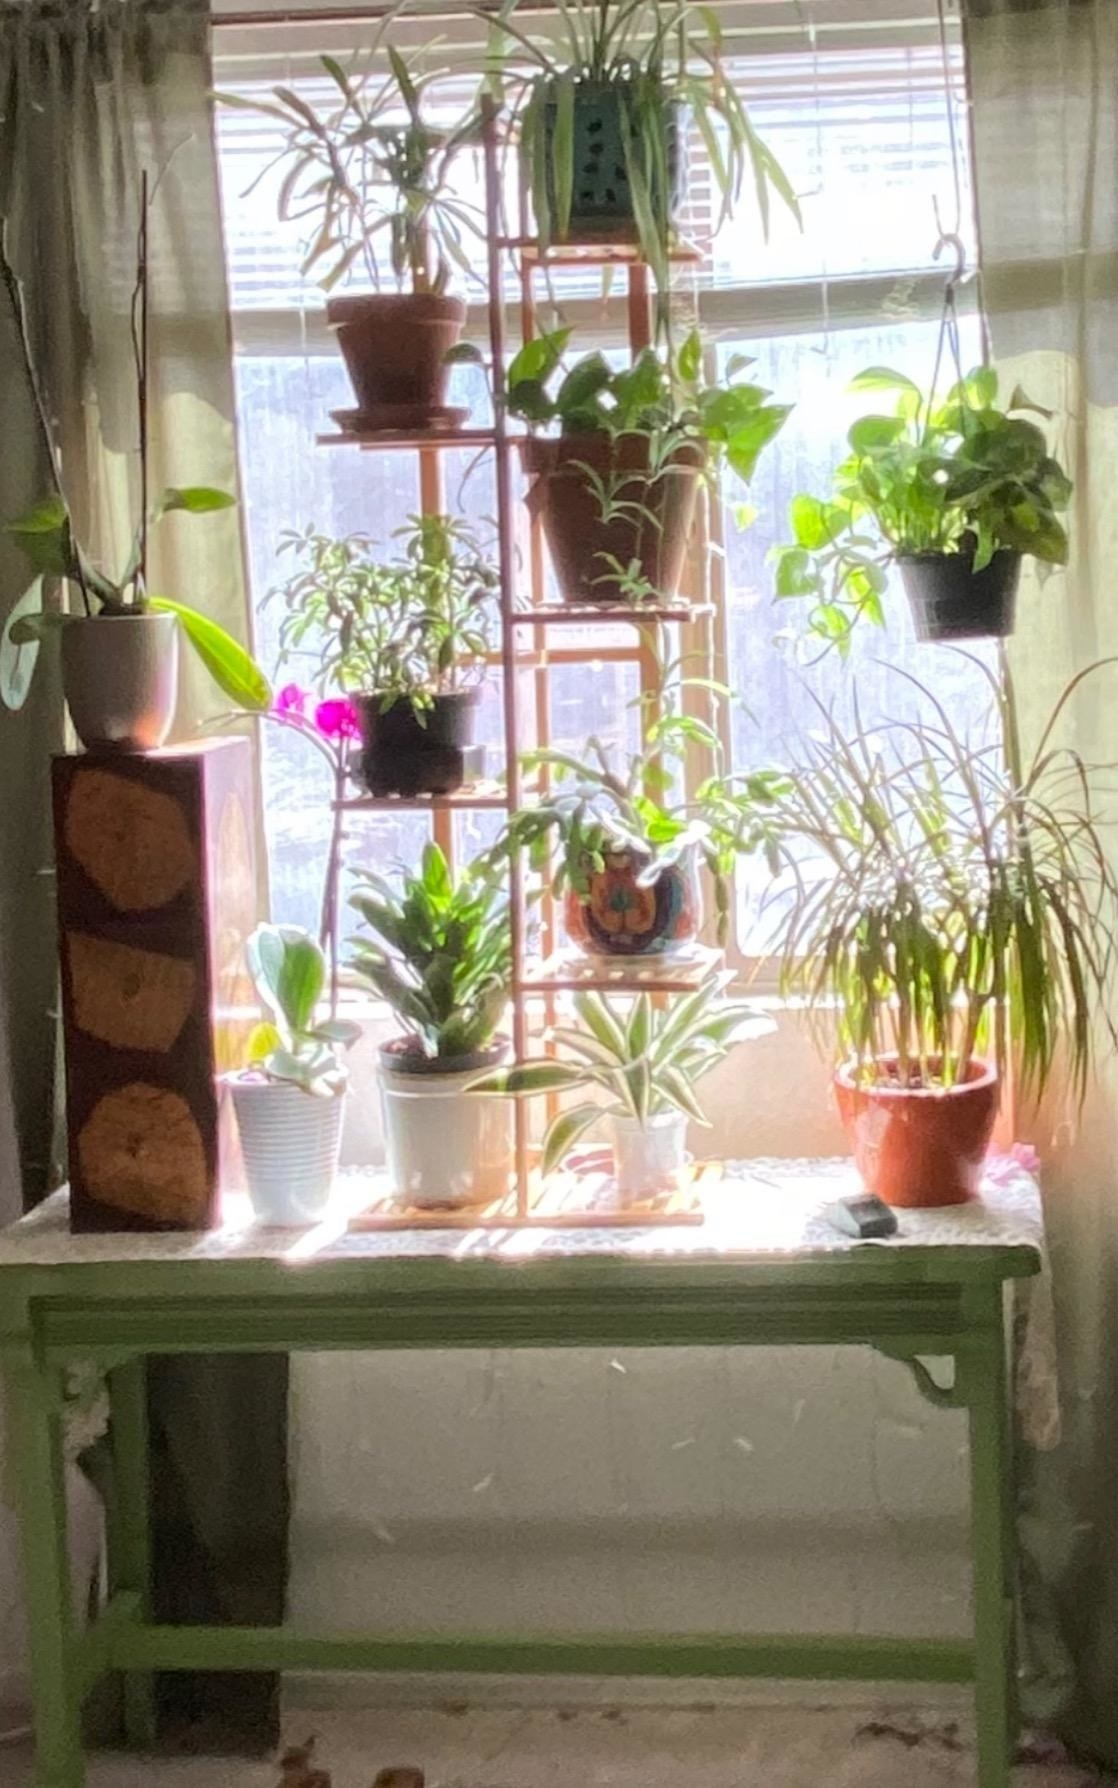 Review image of the plant stand on a windowsill